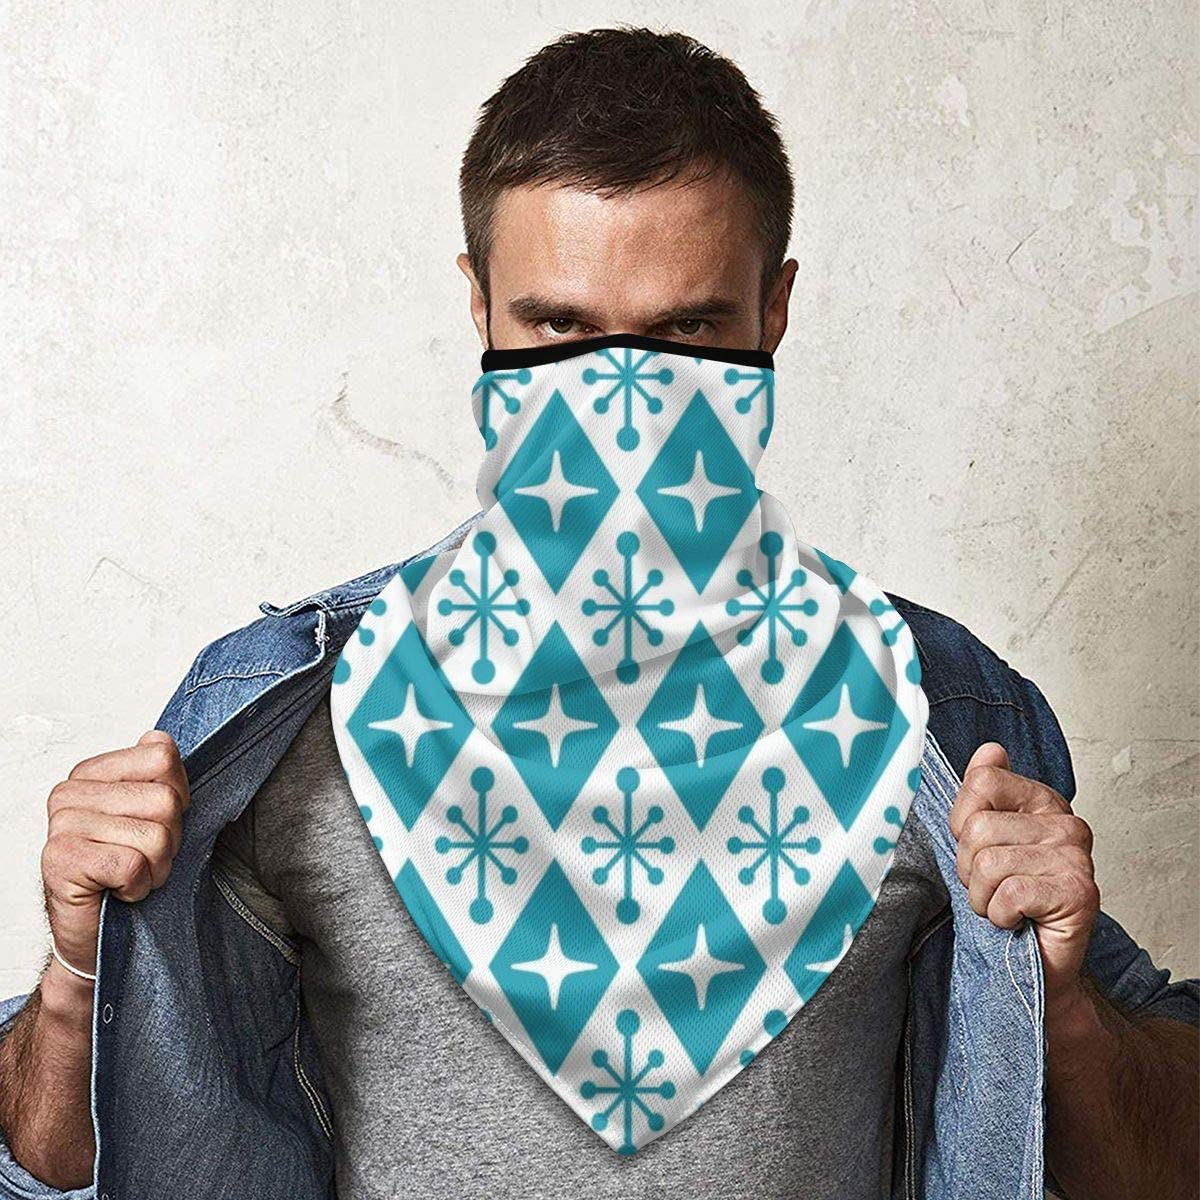 Wind-Resistant Face Mask/& Neck Gaiter,Balaclava Ski Masks,Breathable Tactical Hood,Windproof Face Warmer for Running,Motorcycling,Hiking-Mid Century Modern Atomic Triangle Pattern